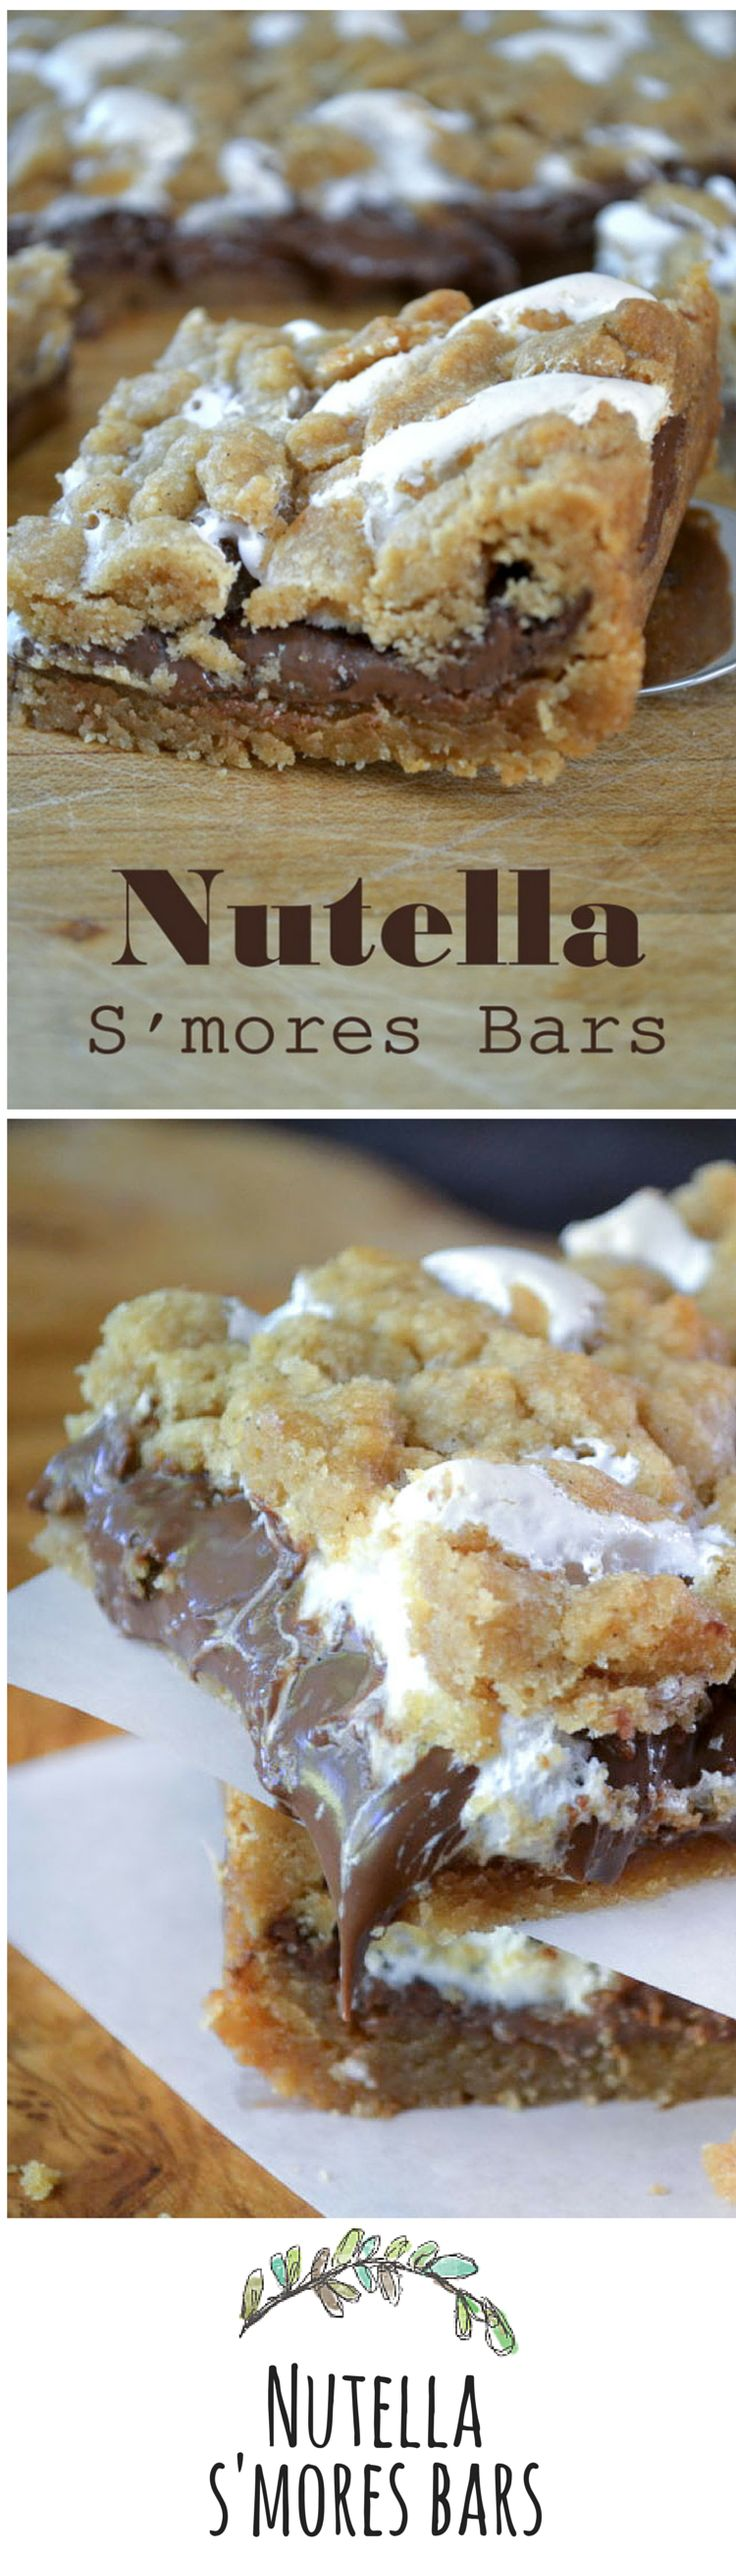 Skip the campfire and make these bars instead! What a delicious and easy dessert bar recipe with Nutella!